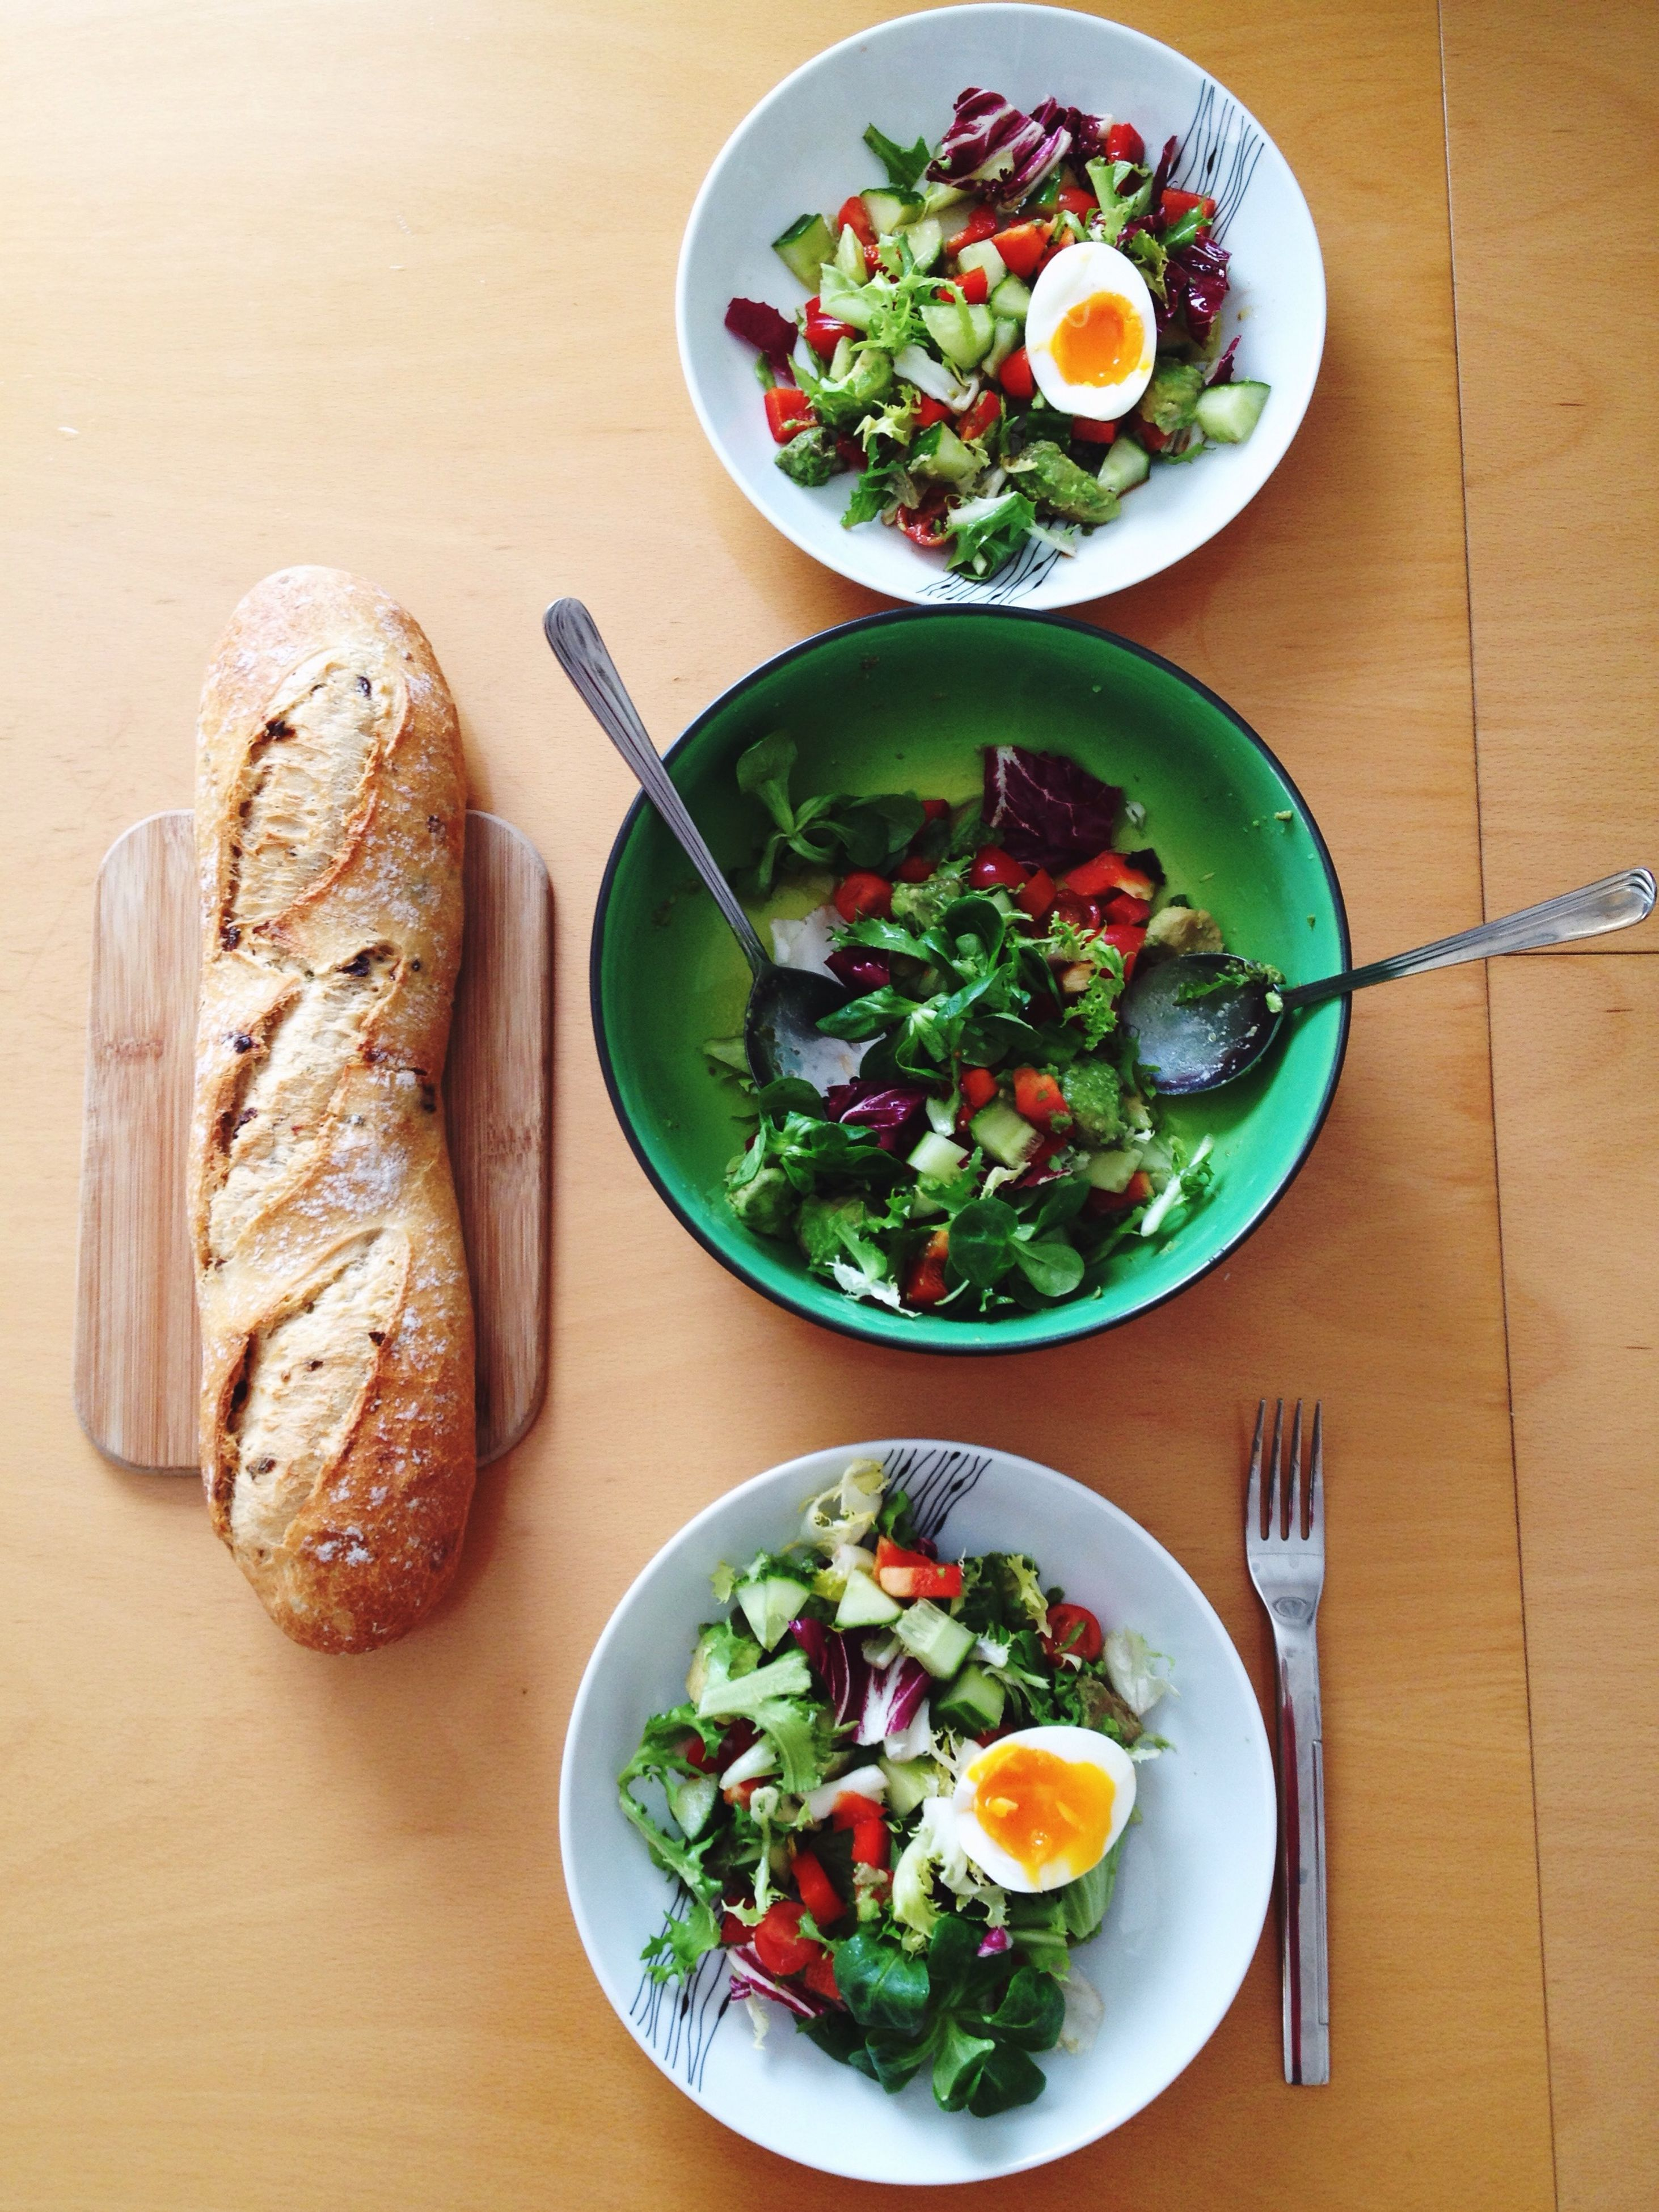 food and drink, food, indoors, freshness, ready-to-eat, table, plate, healthy eating, still life, meal, serving size, vegetable, salad, high angle view, directly above, bowl, meat, served, lunch, healthy lifestyle